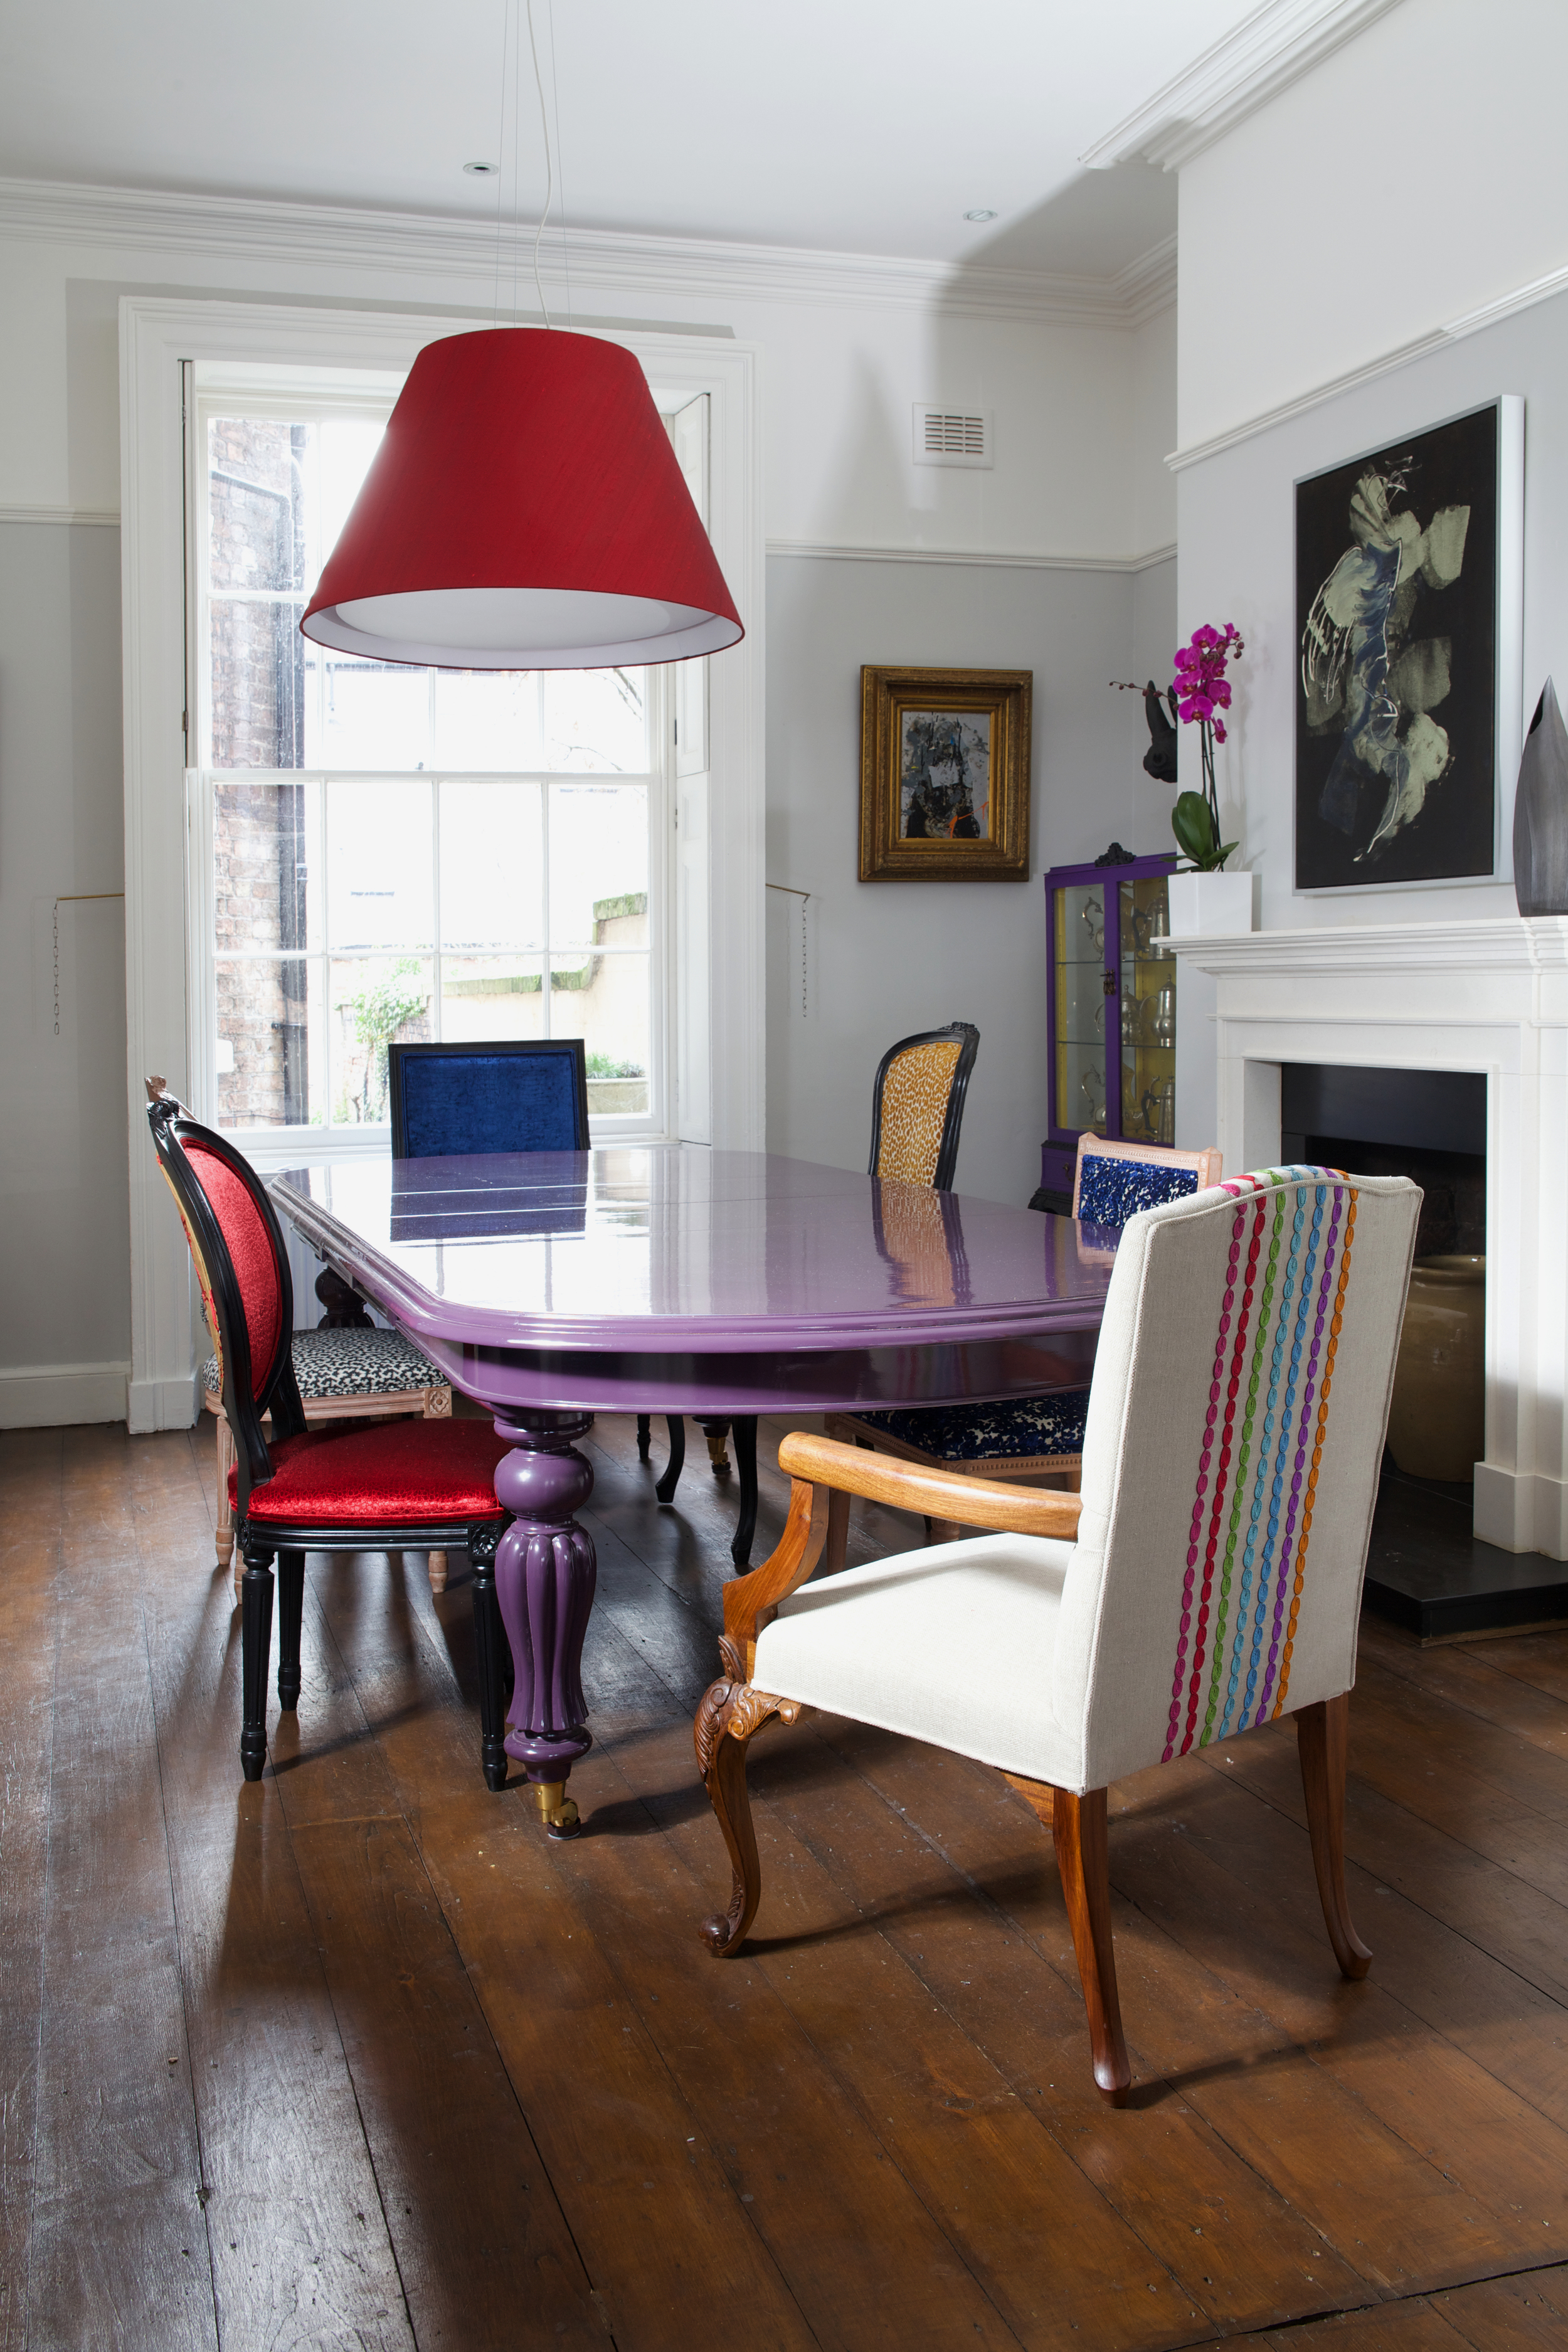 Number 2 Blackburn Terrace, Liverpool. A beautiful soon to open B&B in the heart of Liverpool, upholstered chairs by Kirsty Hull.